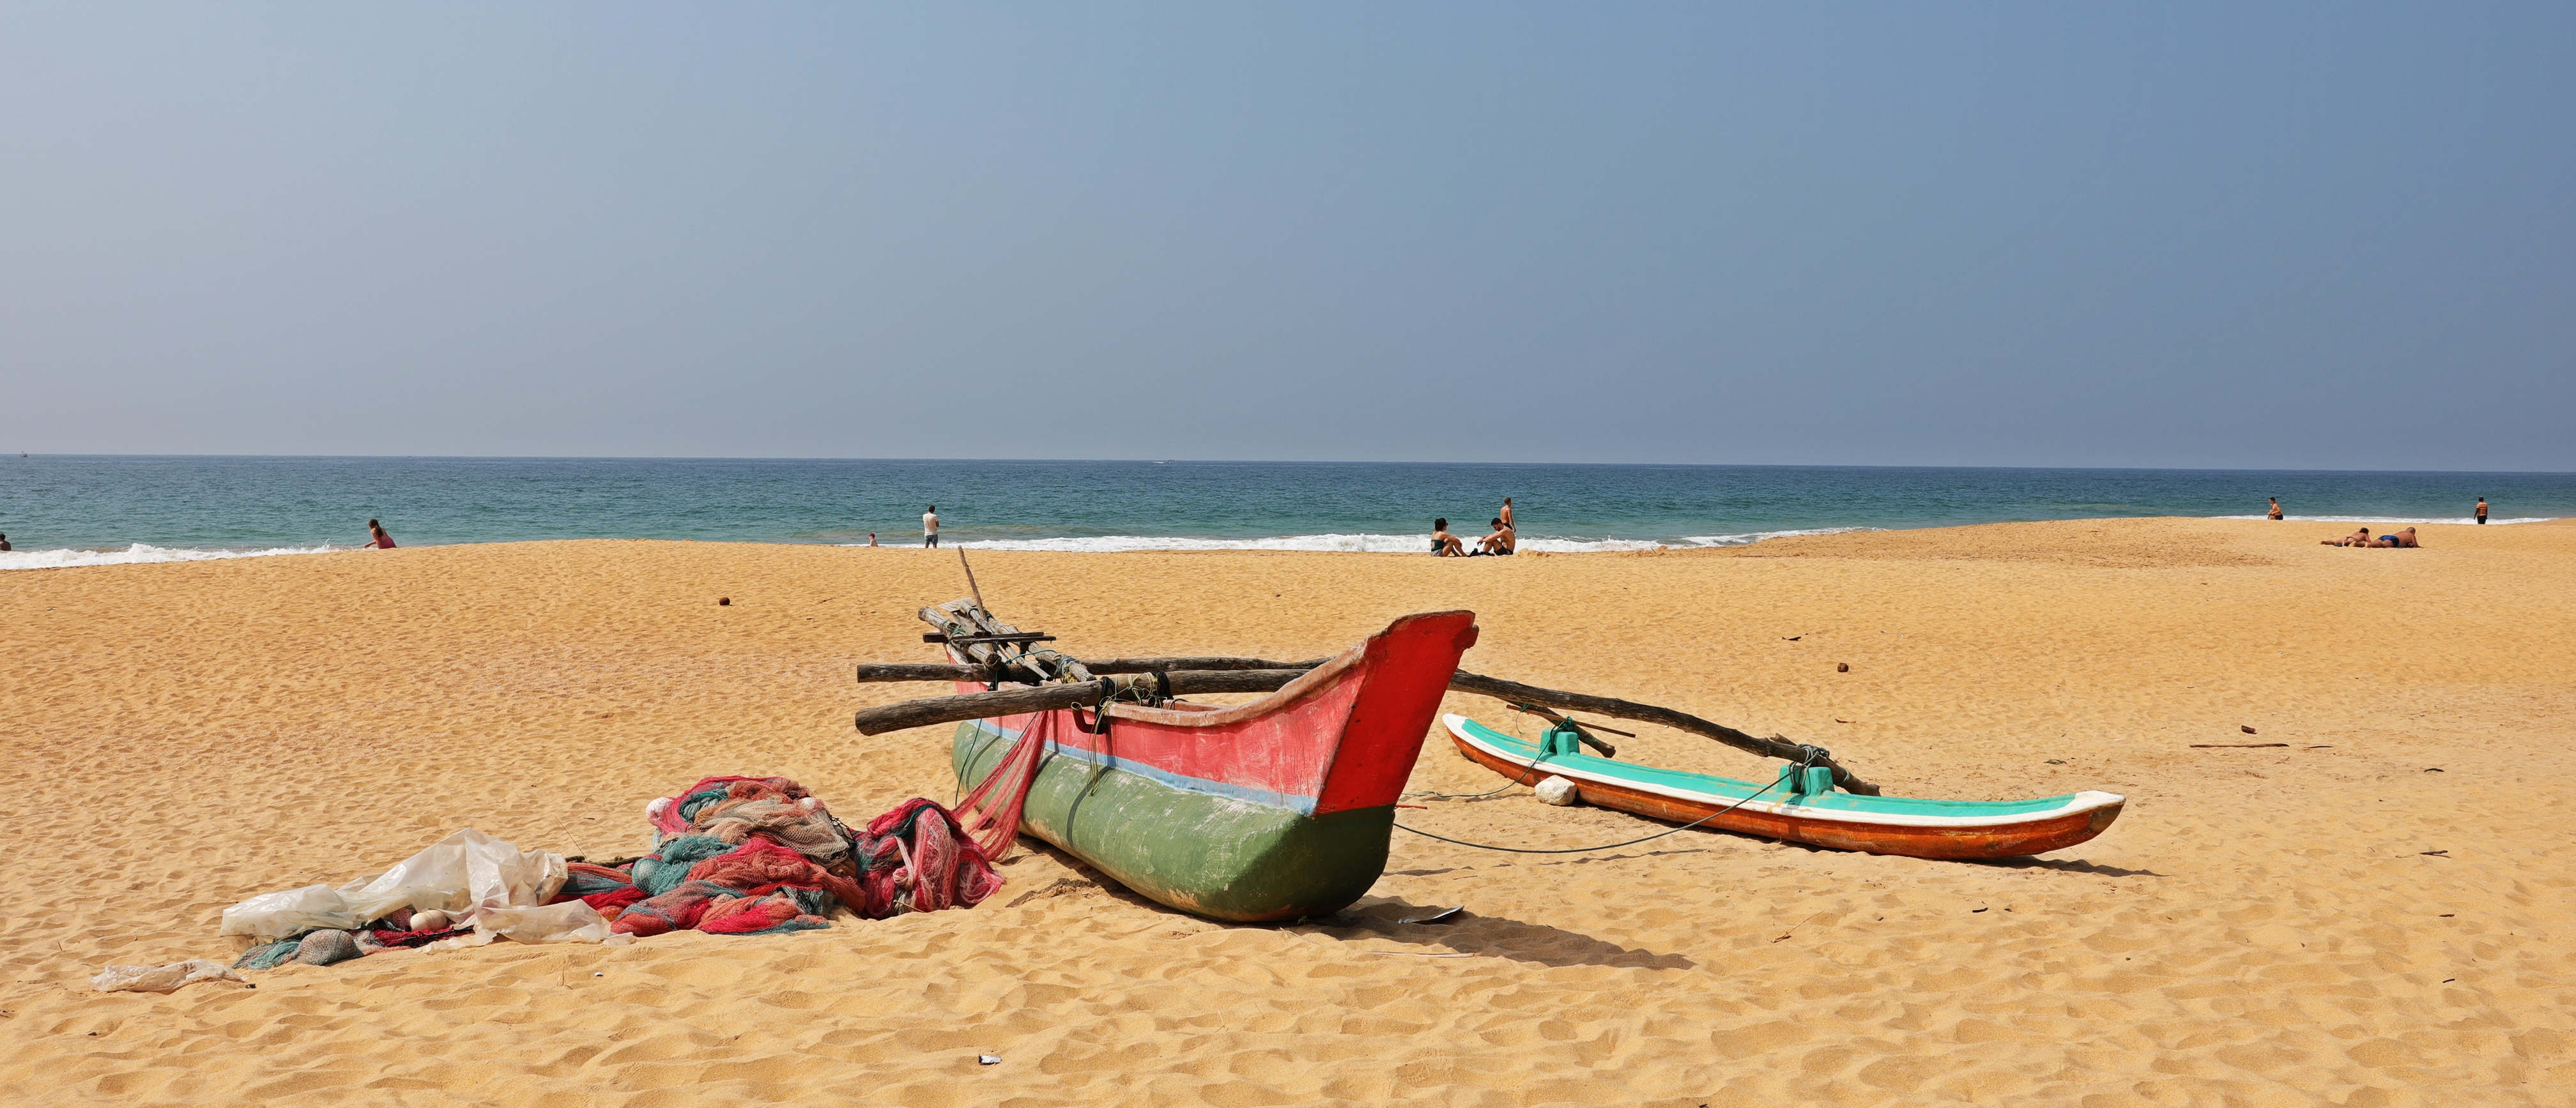 Fishing boat, Hikkaduwa Beach, Sri Lanka